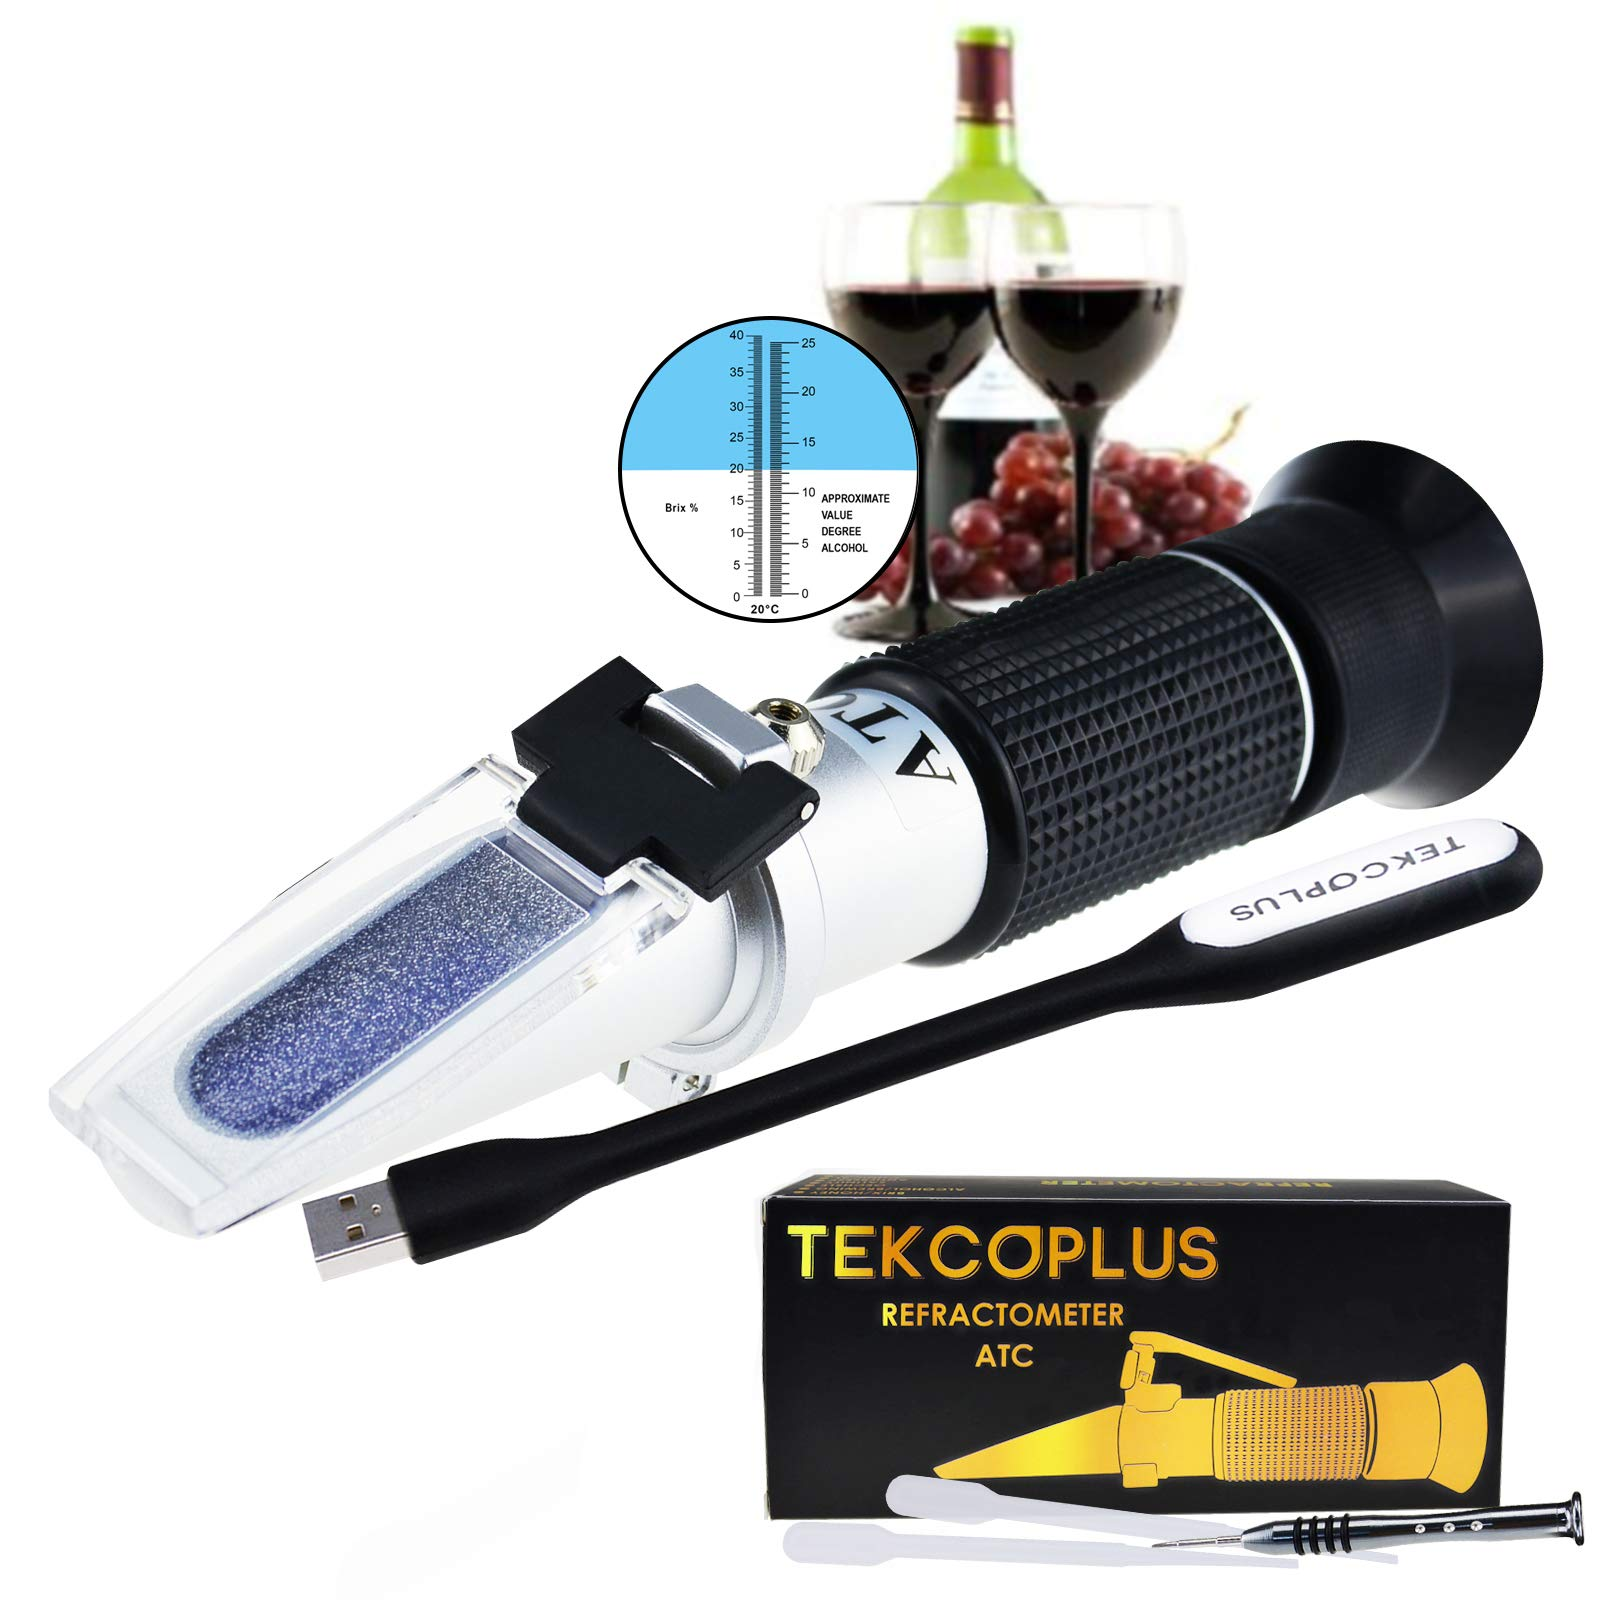 Optics Grape Wine Refractometer with ATC, Dual Scale 0-25% vol and Alcohol & 0-40% Brix, for Wine Making, Homebrew Kit, Winemakers, with LED light and pipettes